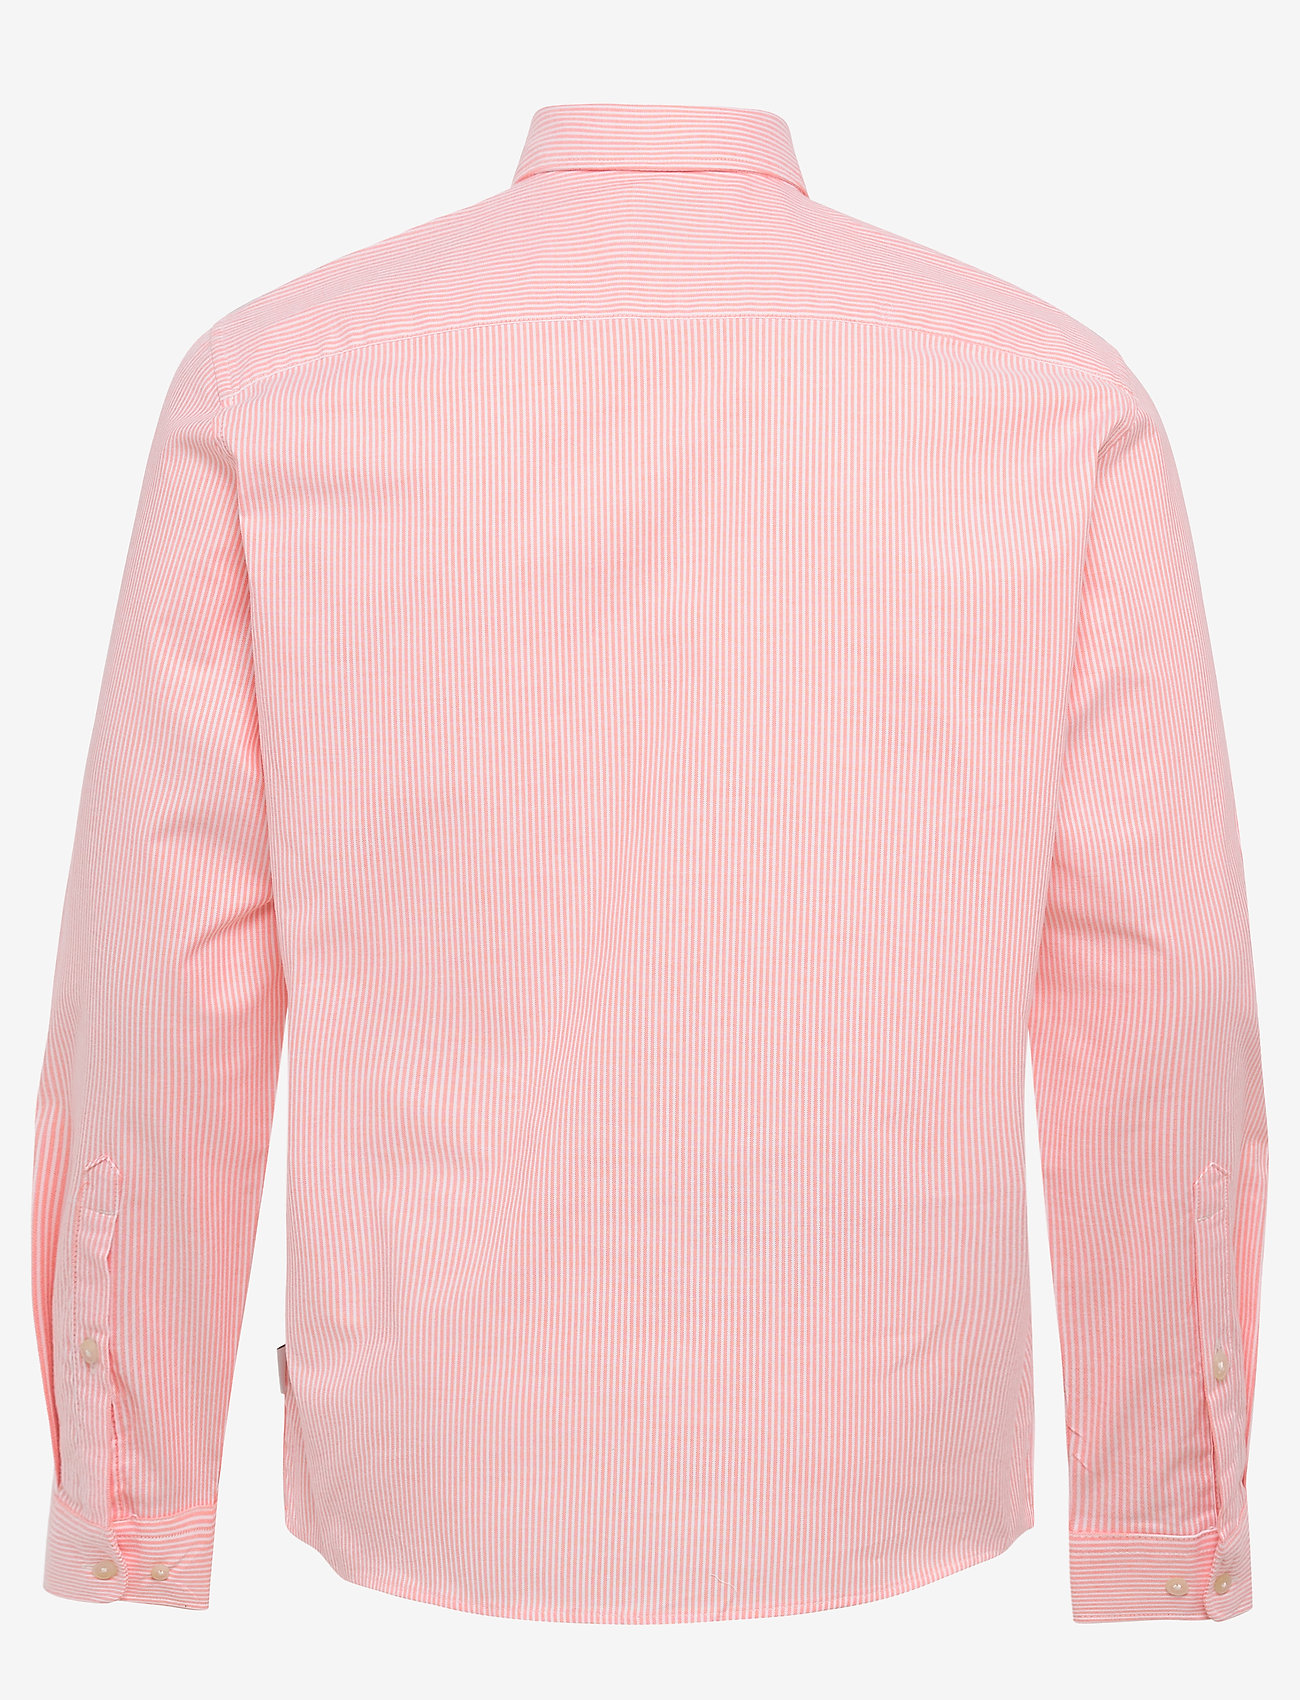 Esprit Casual - Shirts woven - oxford shirts - coral 3 - 1